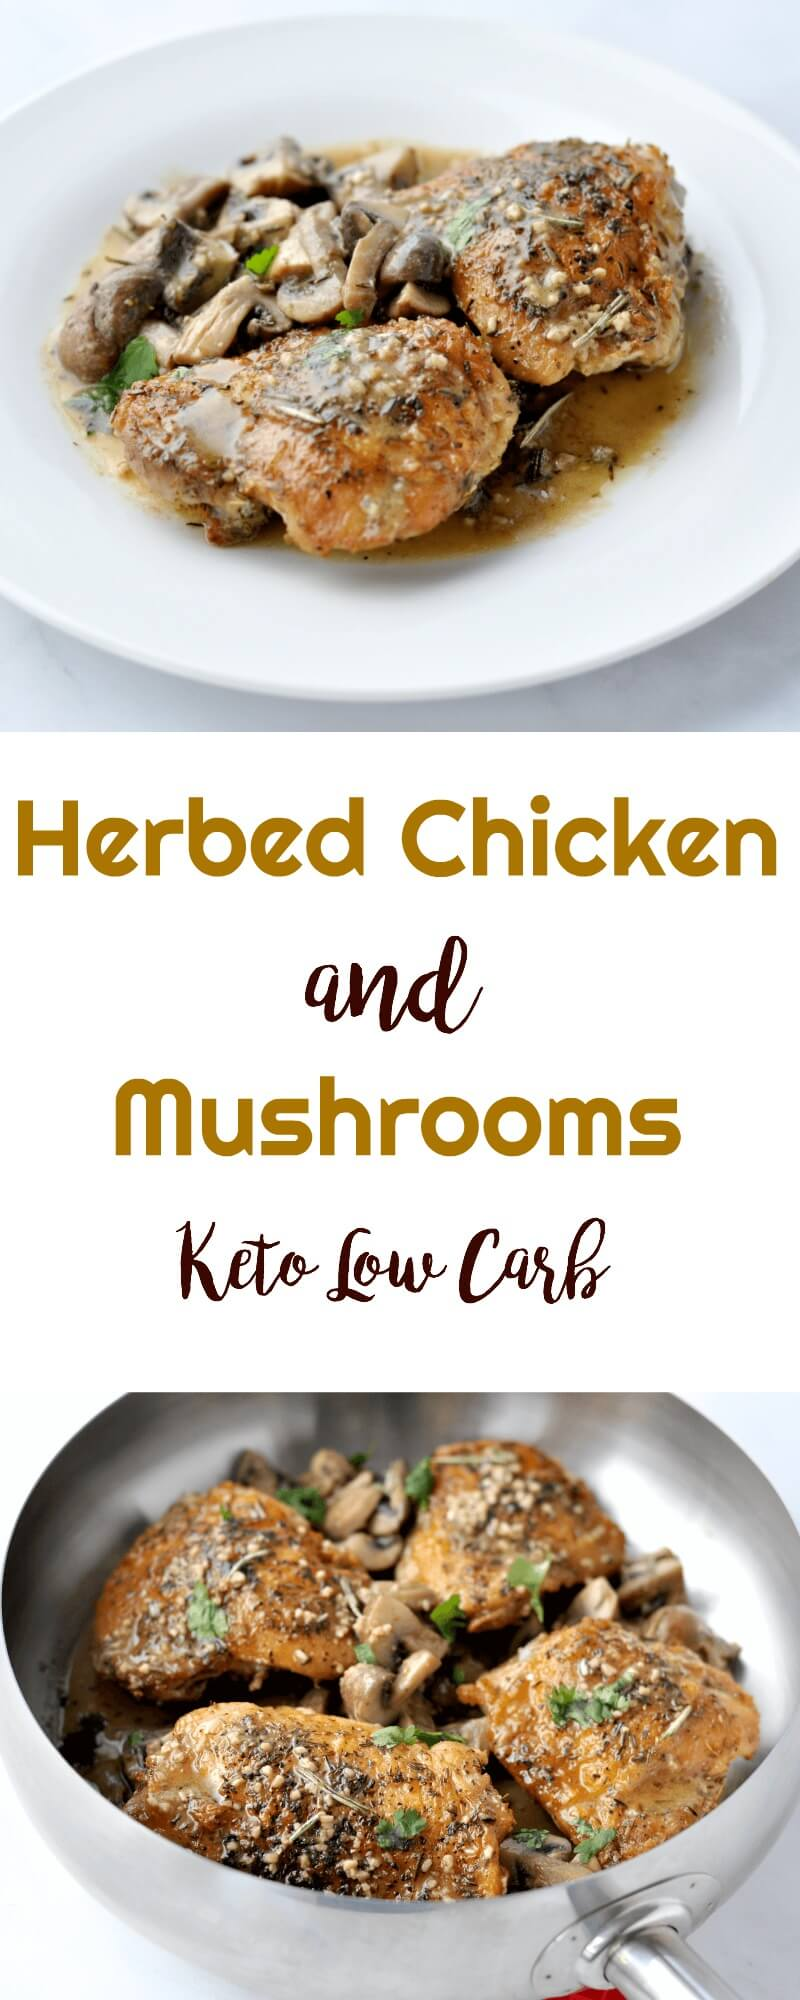 Herbed Chicken and Mushrooms | Peace Love and Low Carb #keto #lowcarb #ketochickenrecipes #chickenandmushrooms #keto recipes #lowcarbrecipes